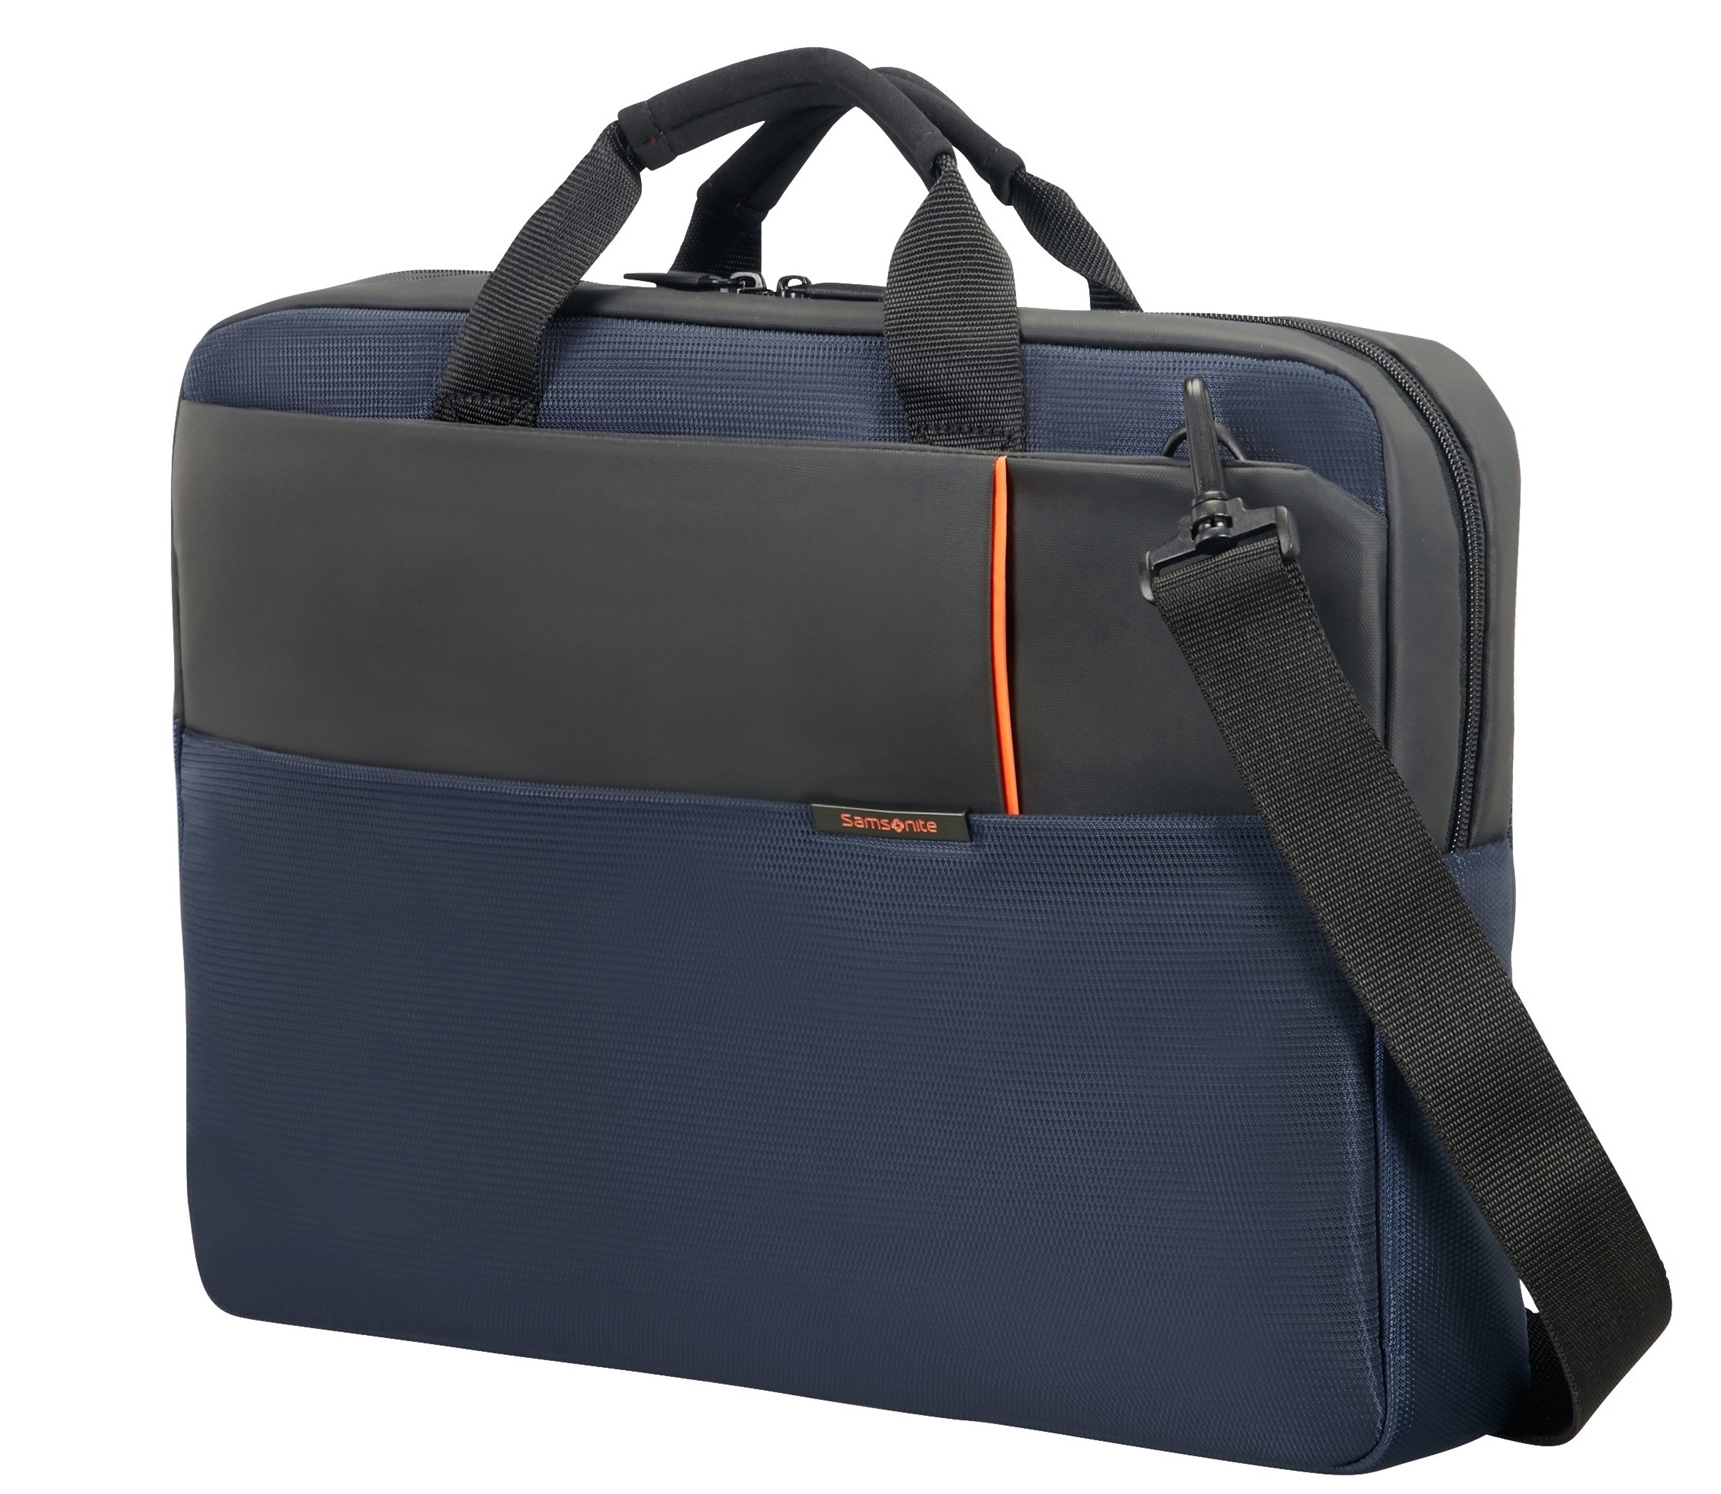 SAMSONITE - BORSE NOTEBOOK - 5414847720659